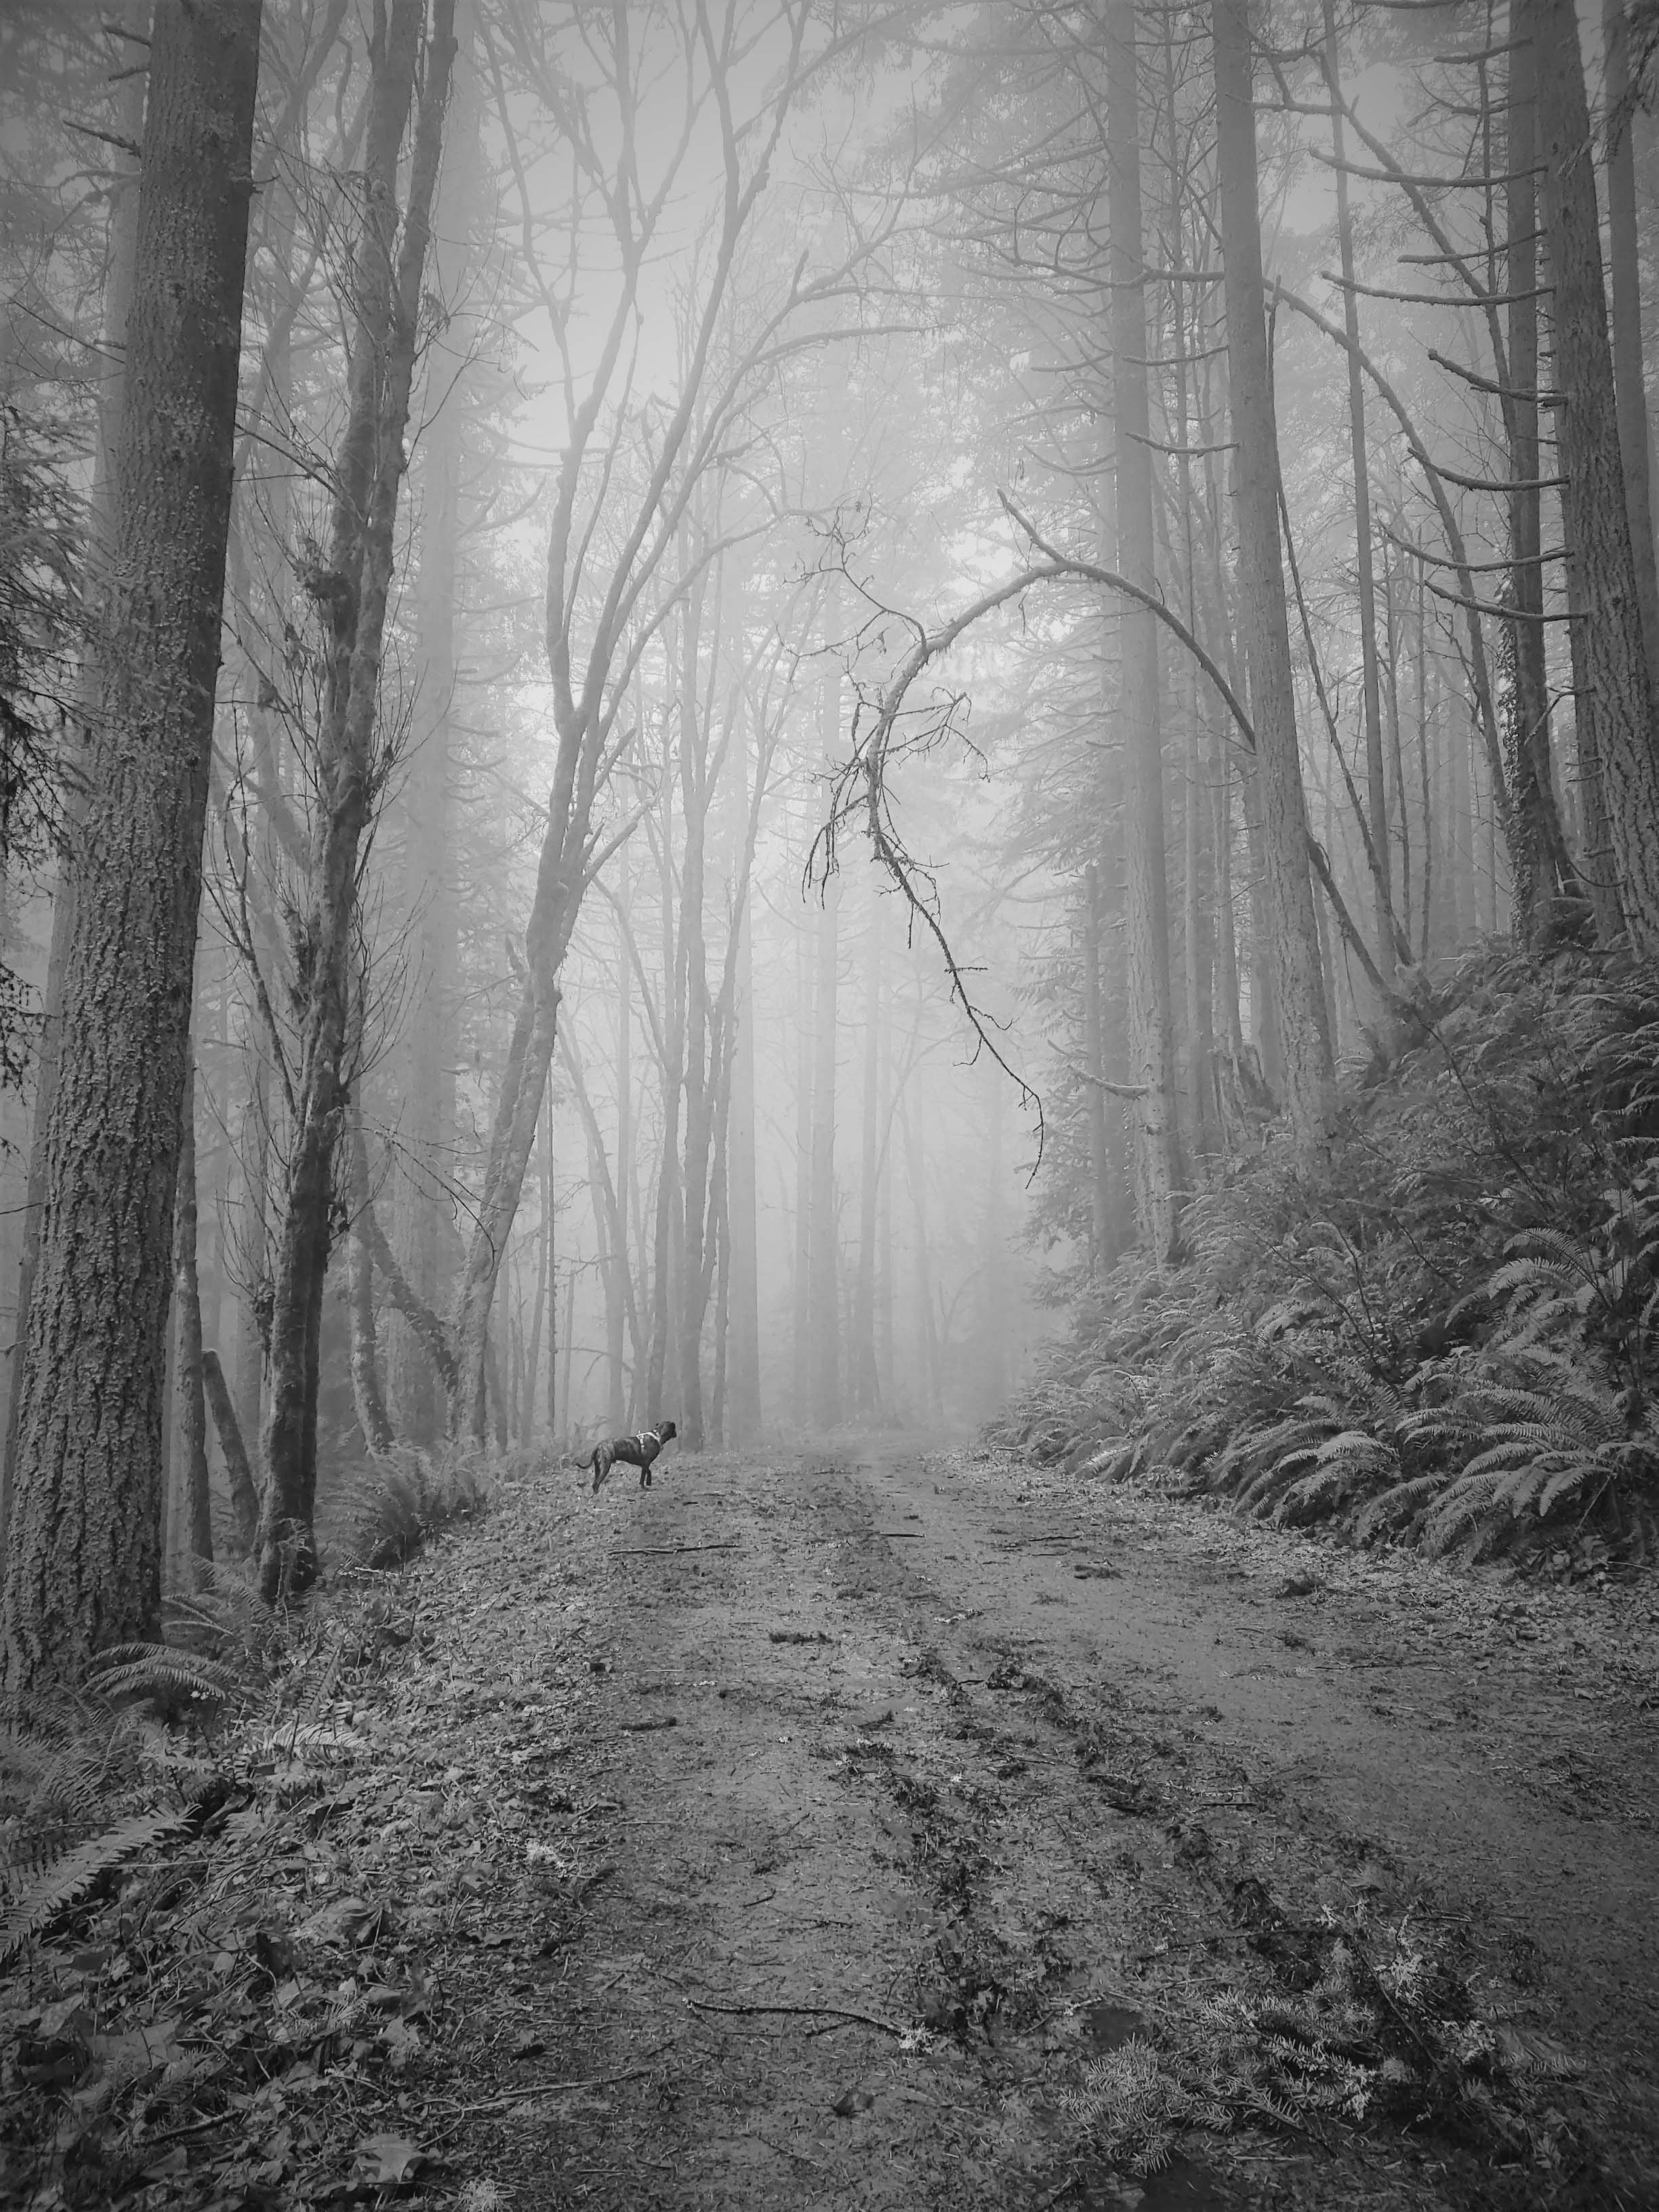 Winter Walk, copyright © Rebekah Skye